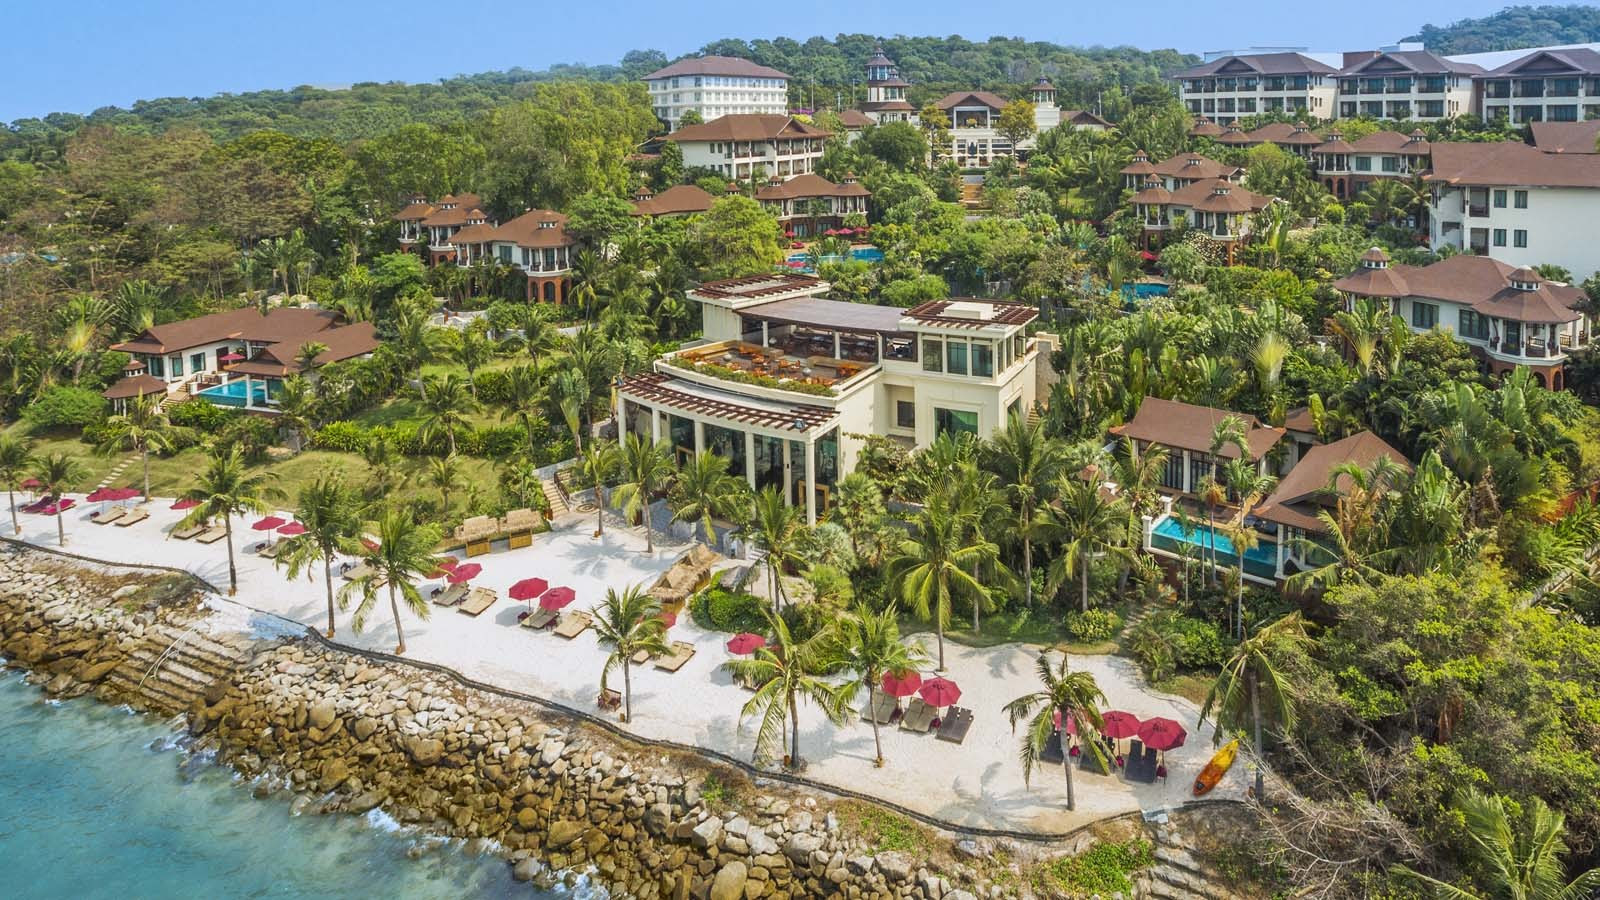 intercontinental pattaya resort to open beachfront on pattaya bay destination thailand news - The Destination A Luxury Resort